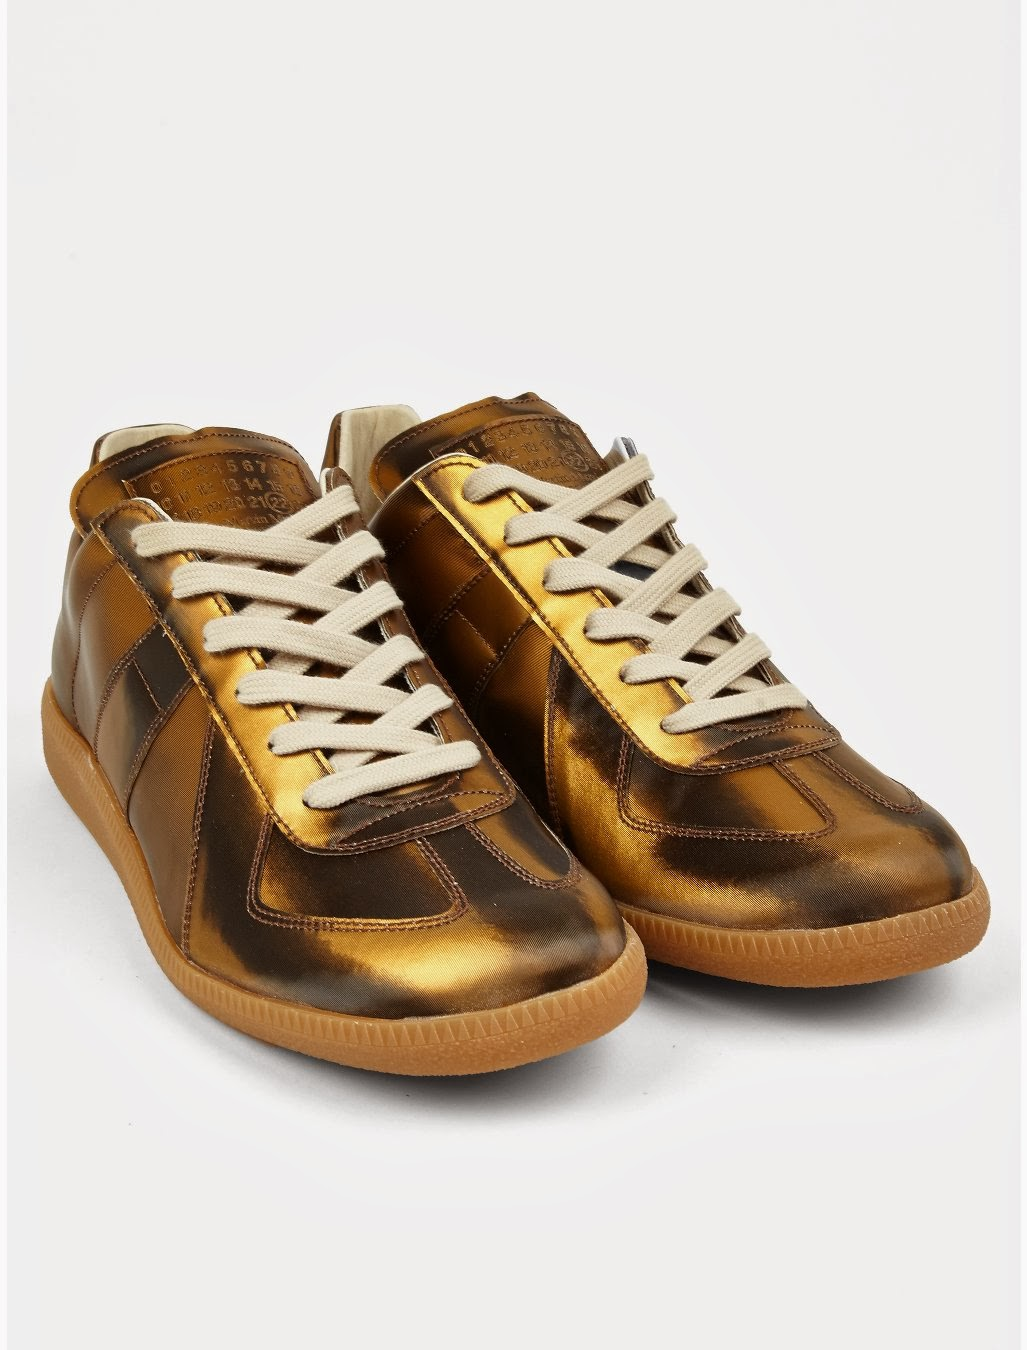 Going for the gold maison martin margiela 22 gold replica for Replica maison martin margiela